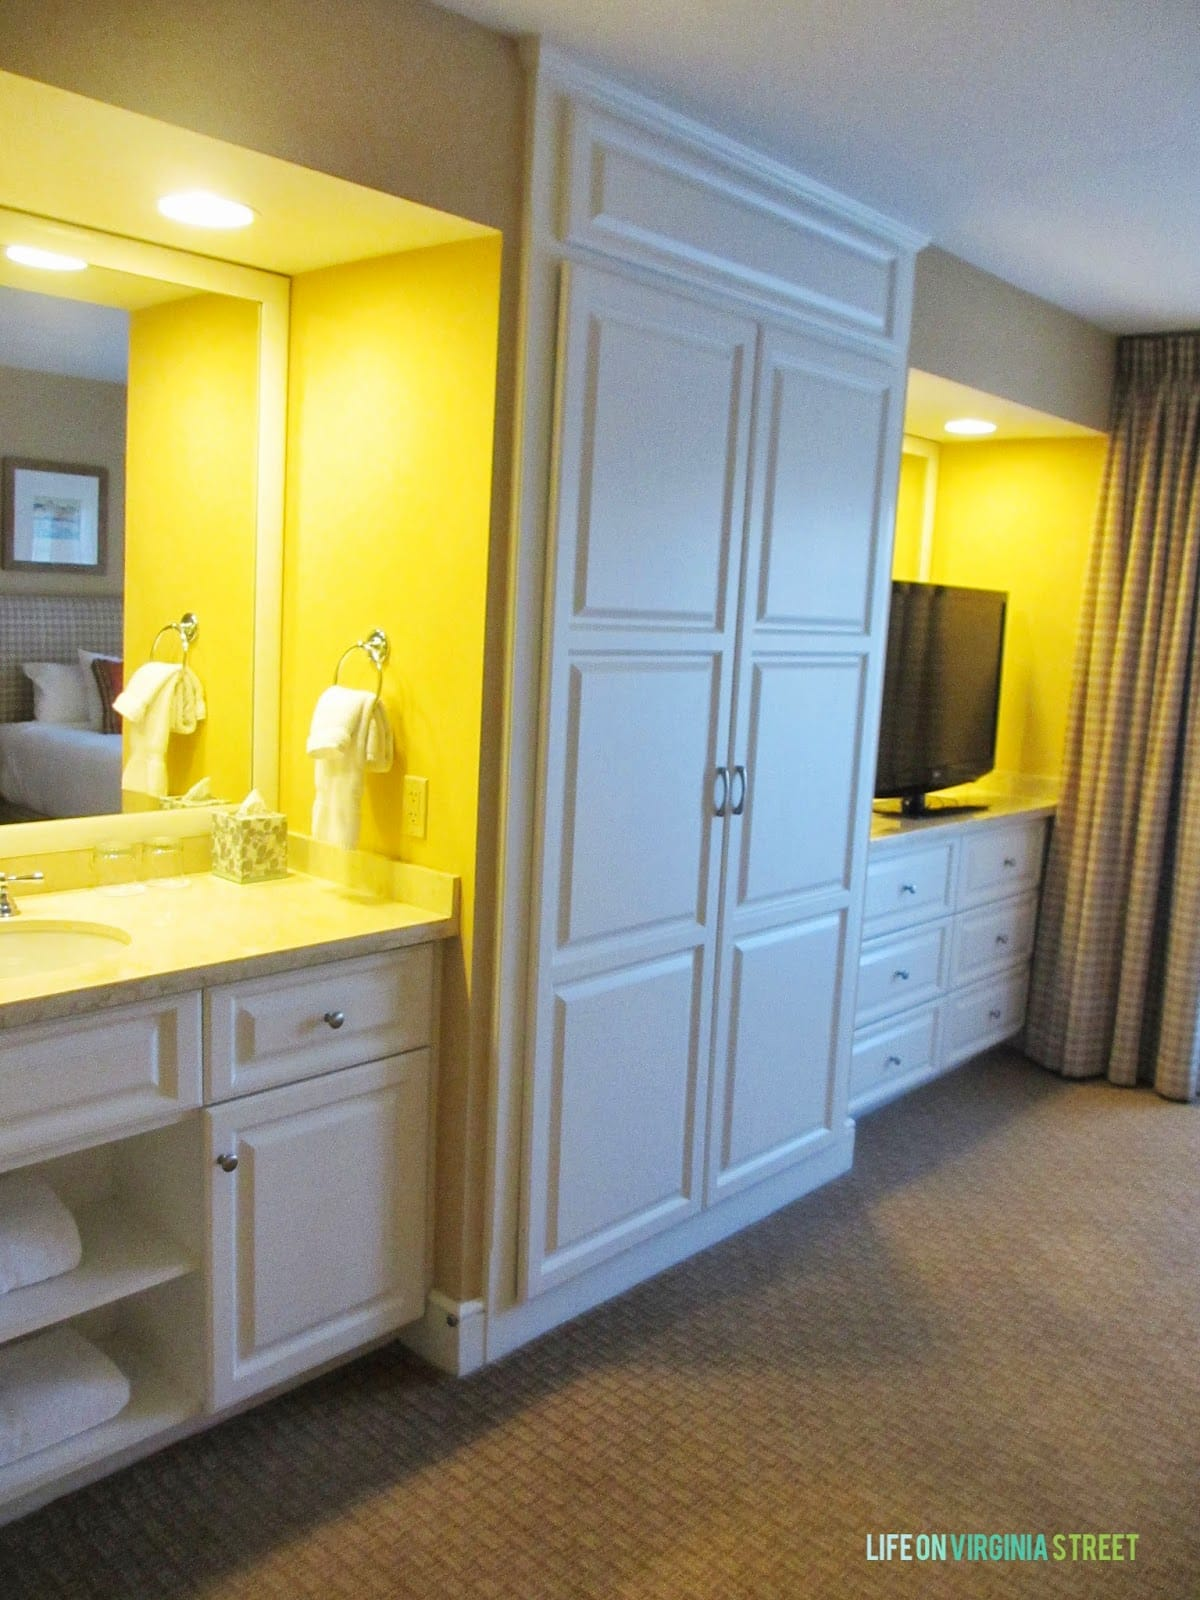 A bedroom vanity and large white closet.